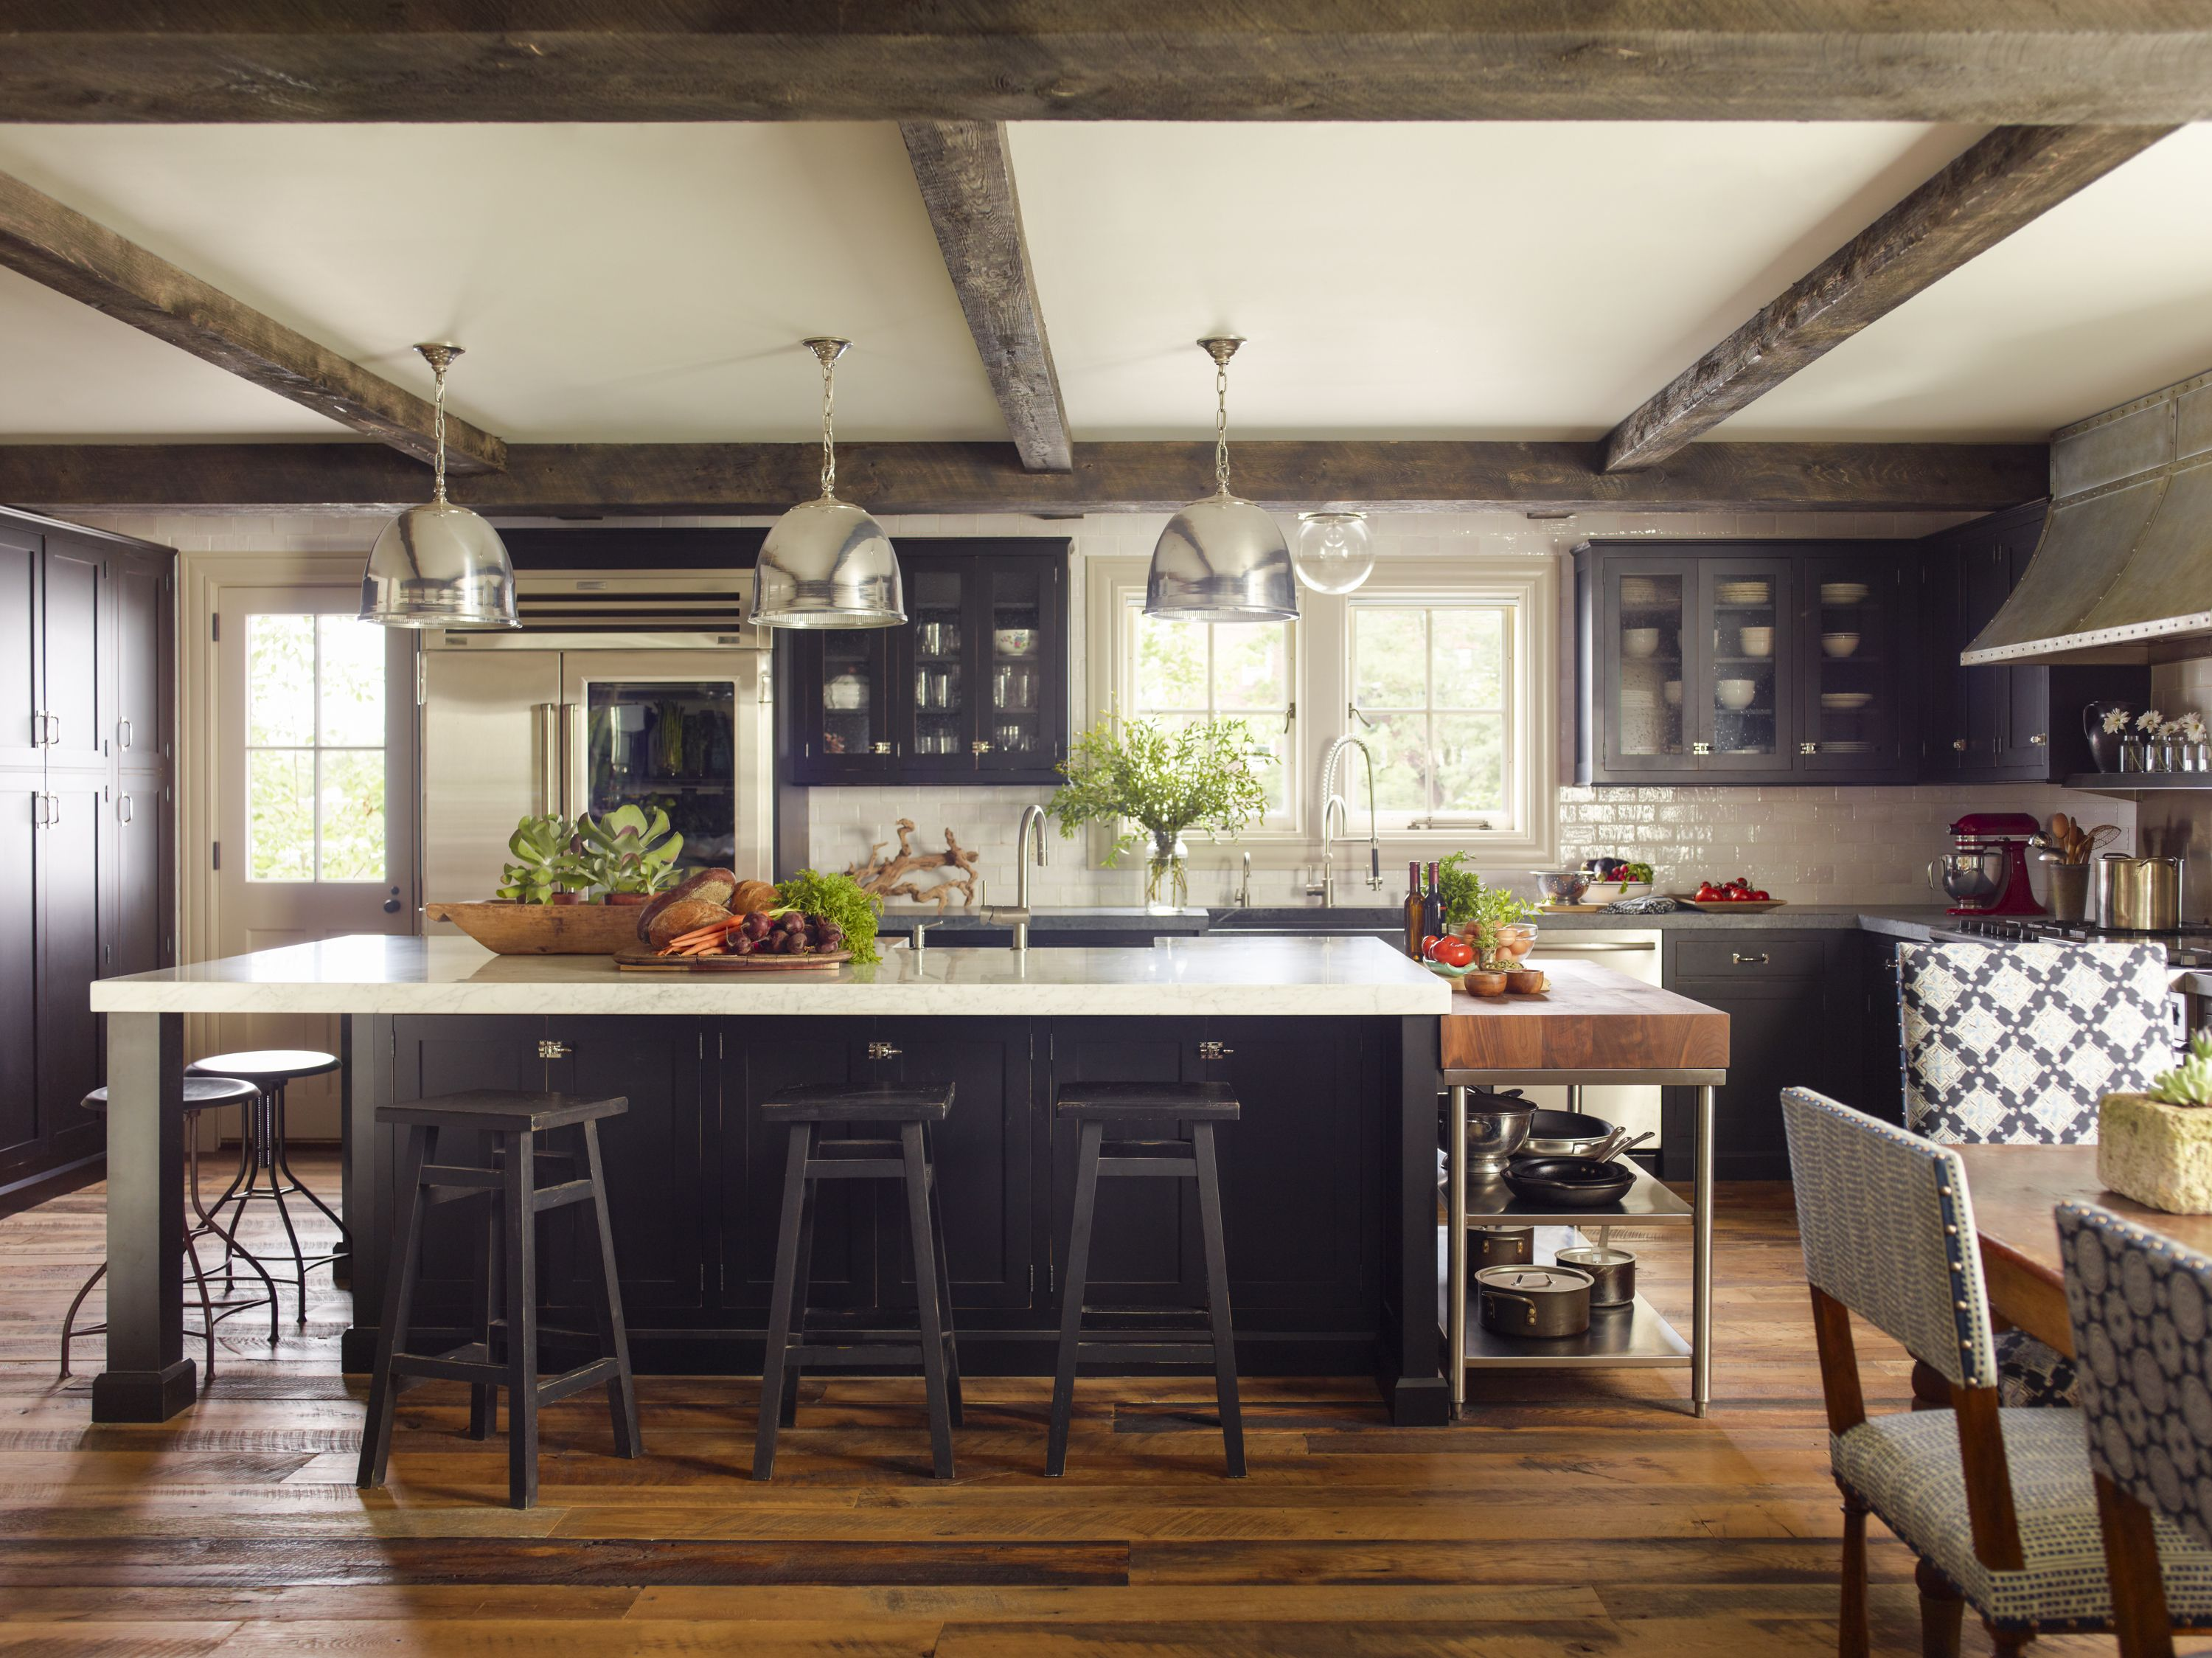 rustic kitchen with oskar 15 pendants designed by dunn and tighe interiors rustic industrial on kitchen interior top view id=59586